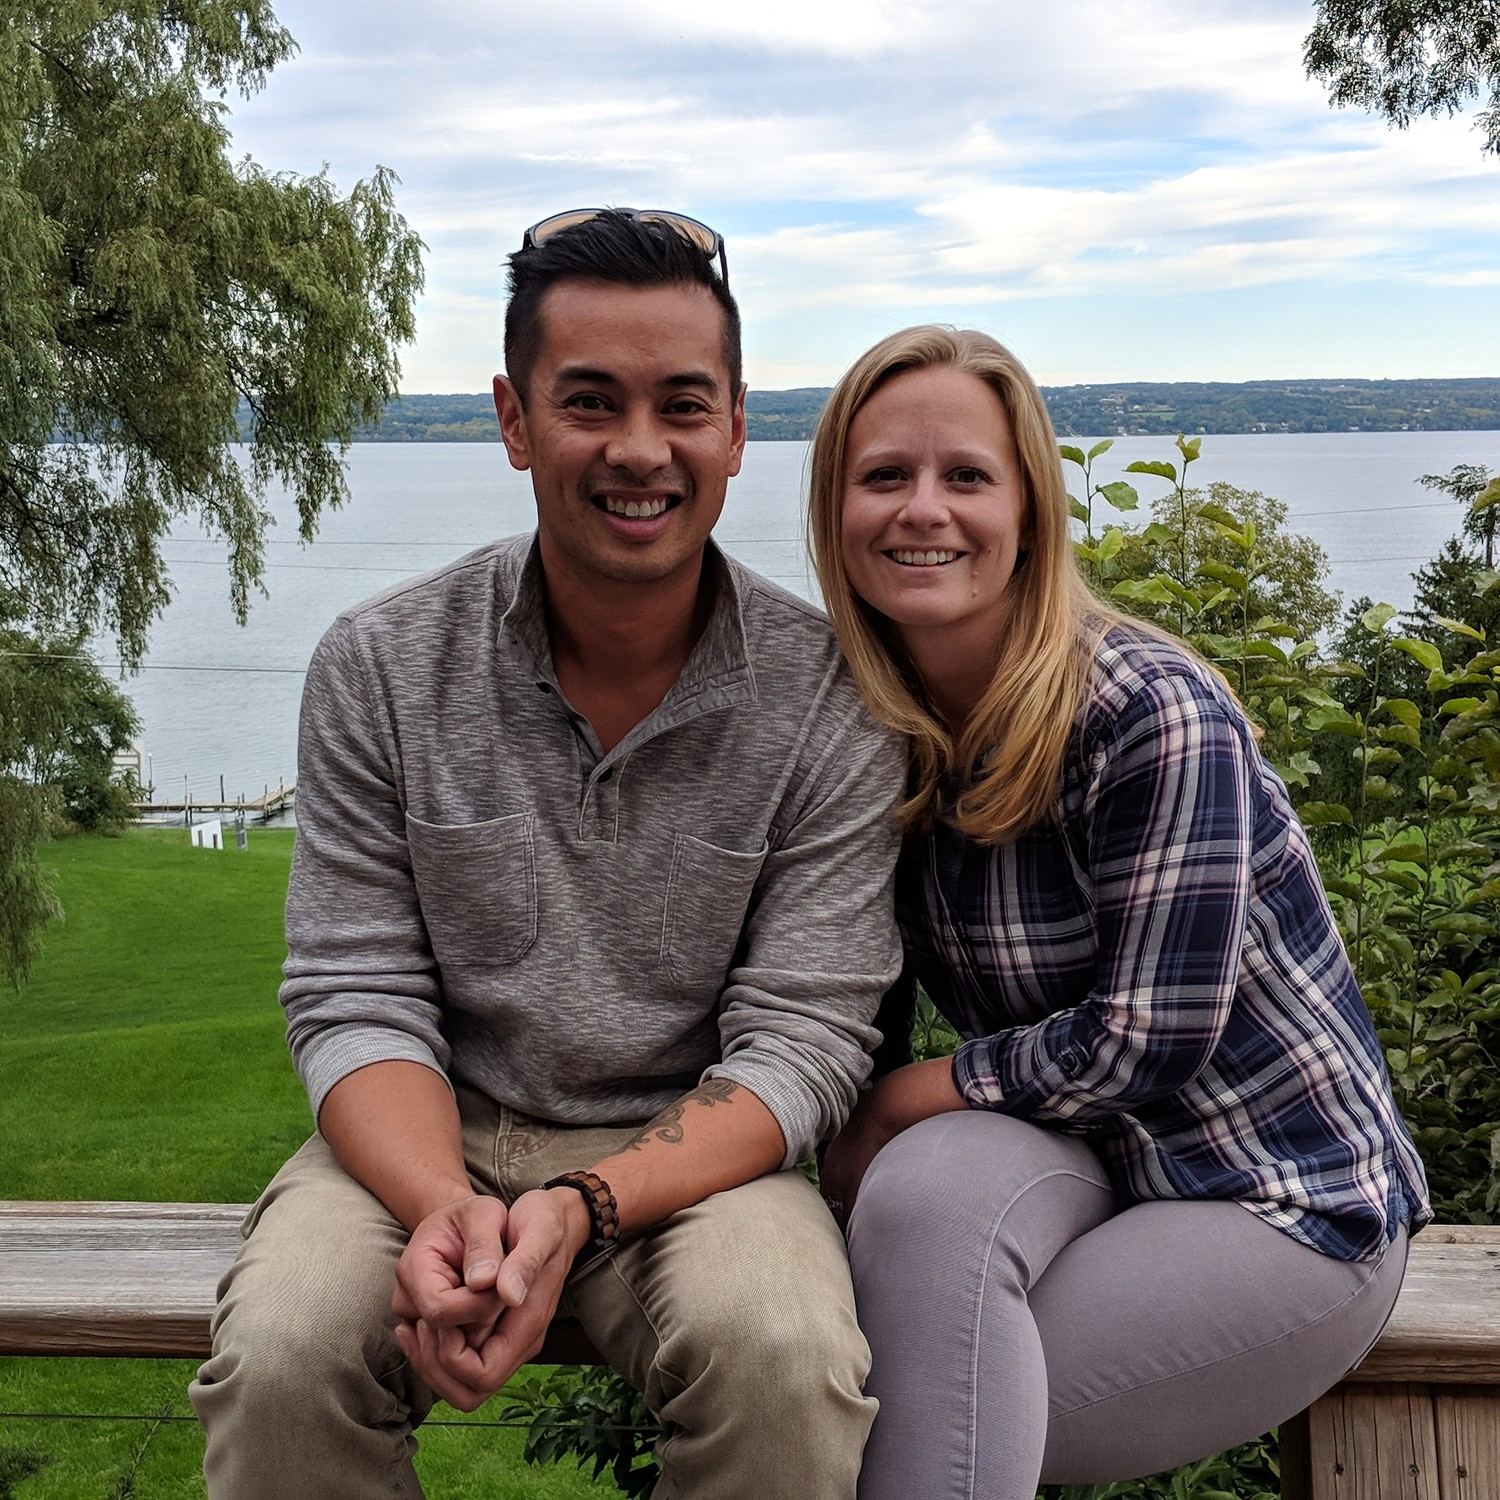 Kevin Quiambao, 35, an East Meadow native, left, and Ashley Hall Quiambao, 31, committed to a nomadic lifestyle traveling in a Winnebago Vista they named Wanda — short for Wanderlust.